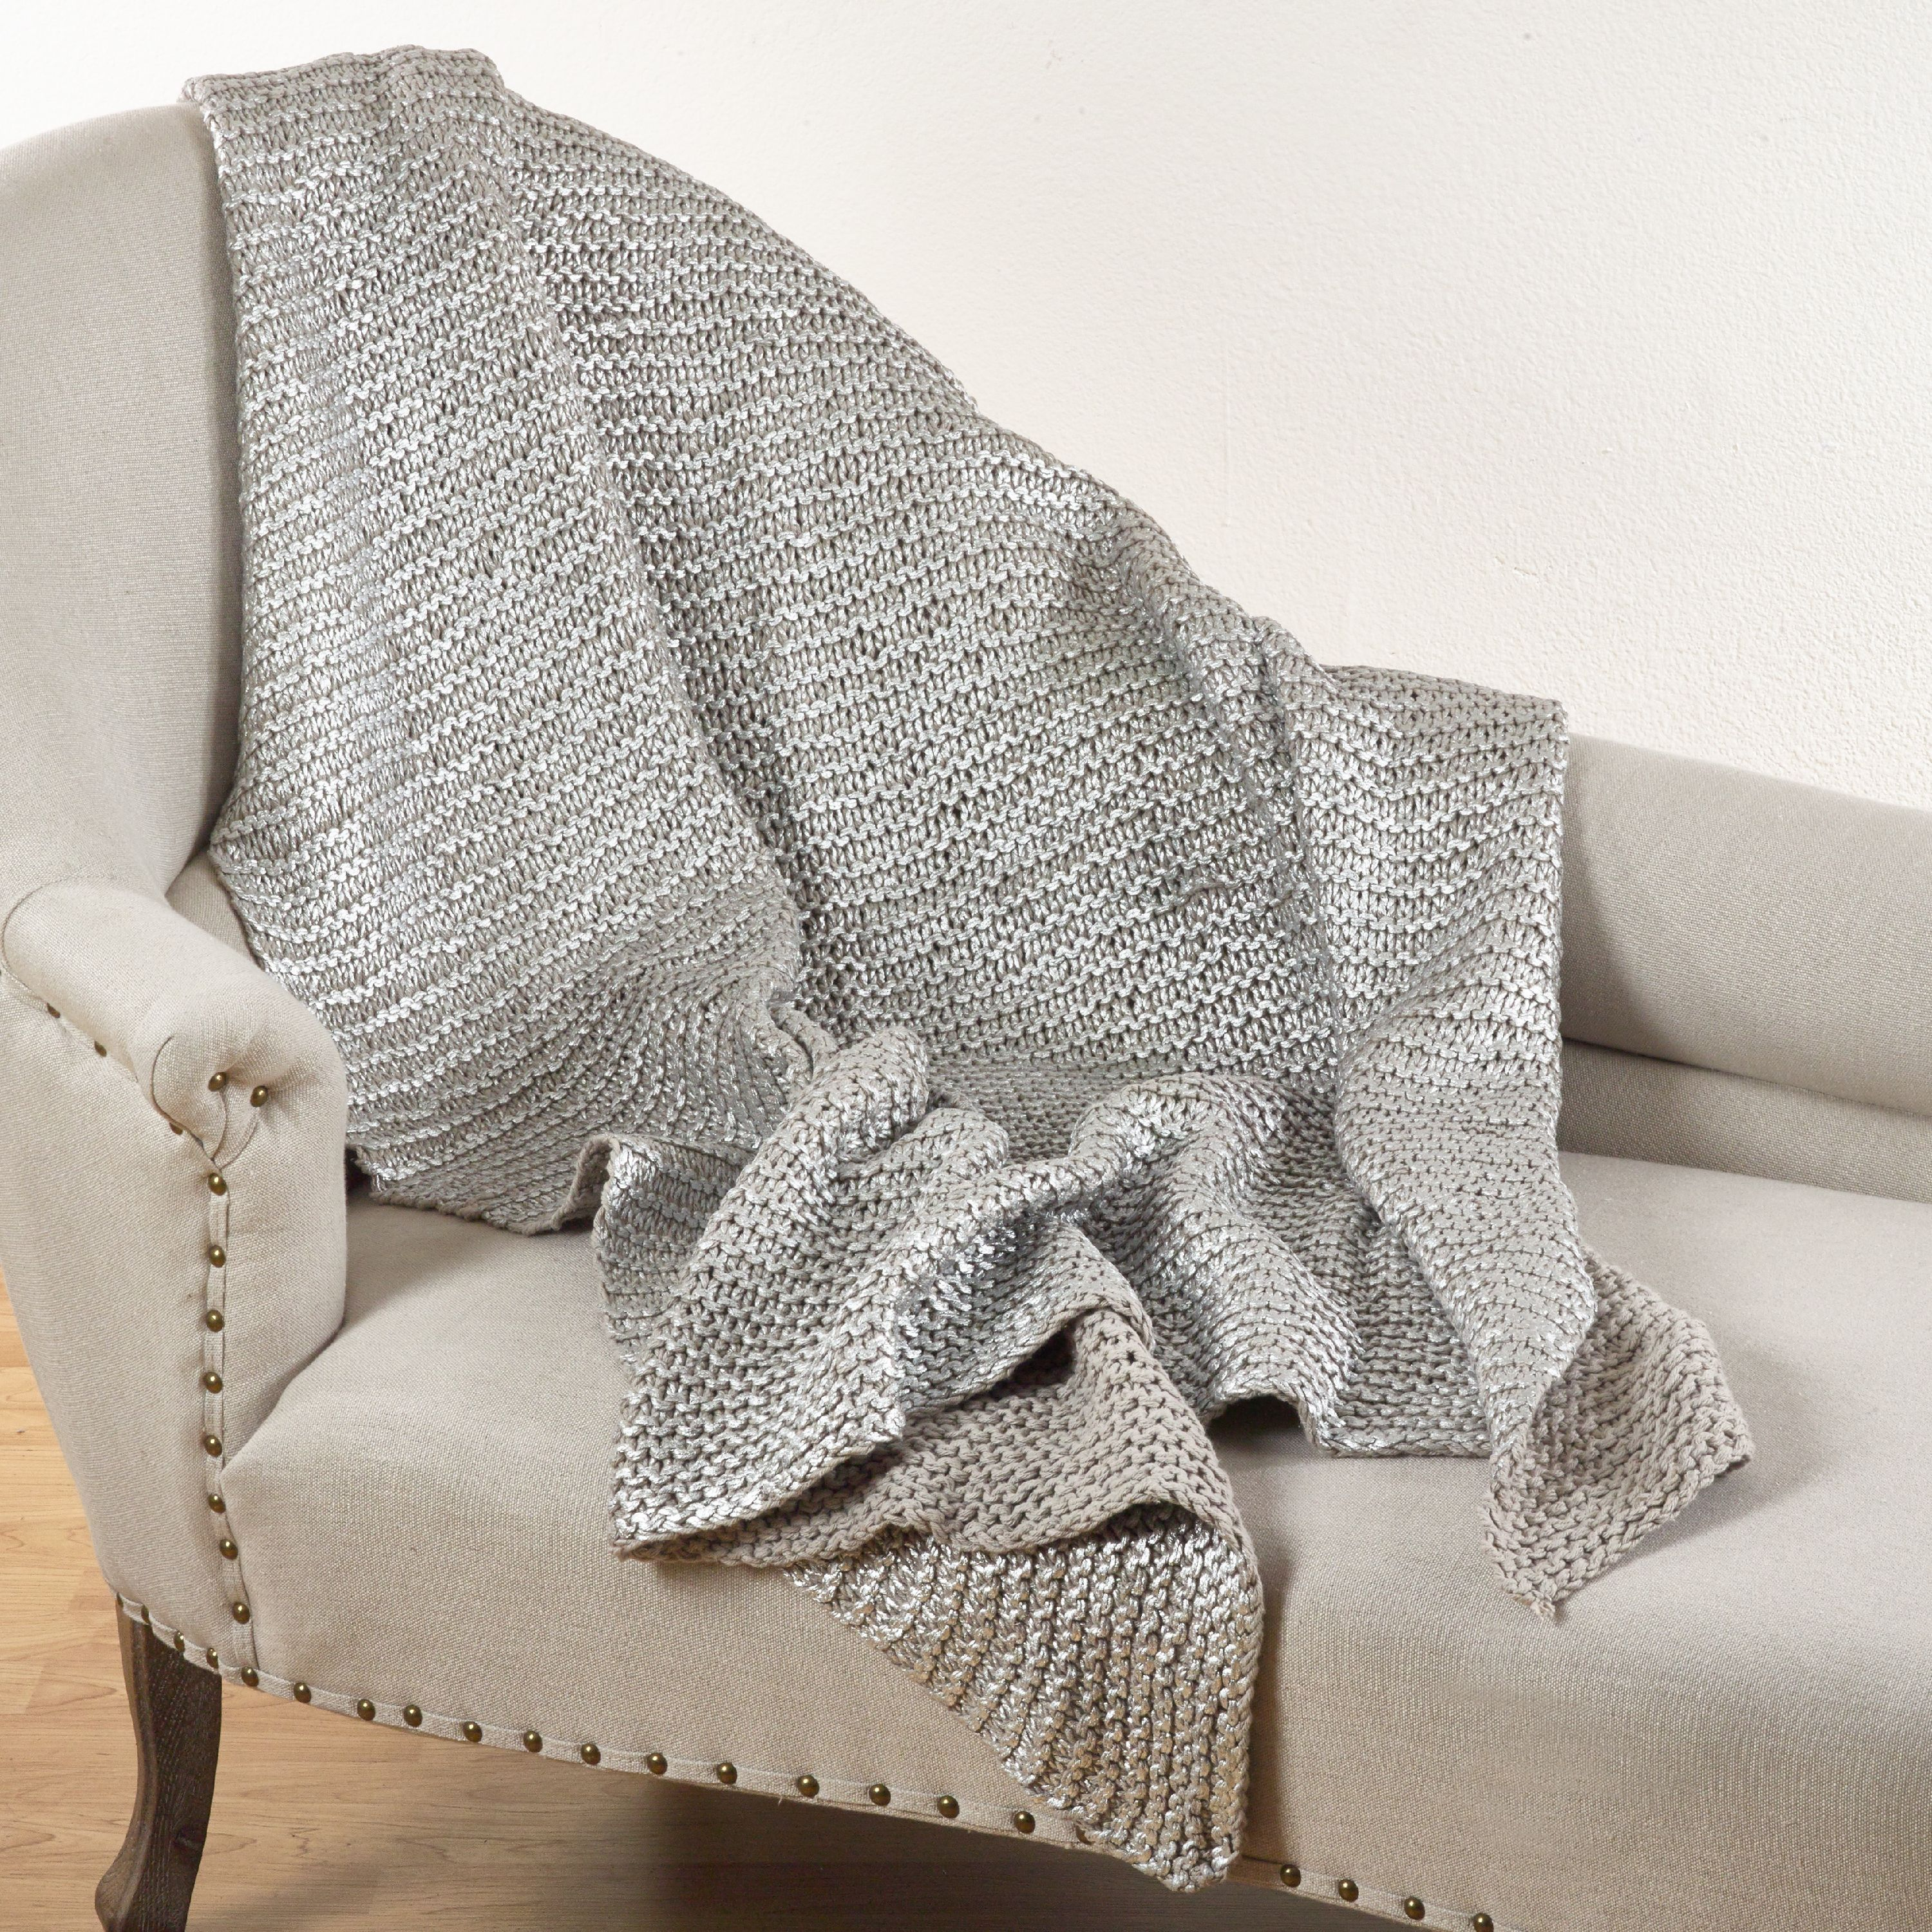 Saro Lifestyle Cassandra Collection Knitted Design Throw Blanket Natural